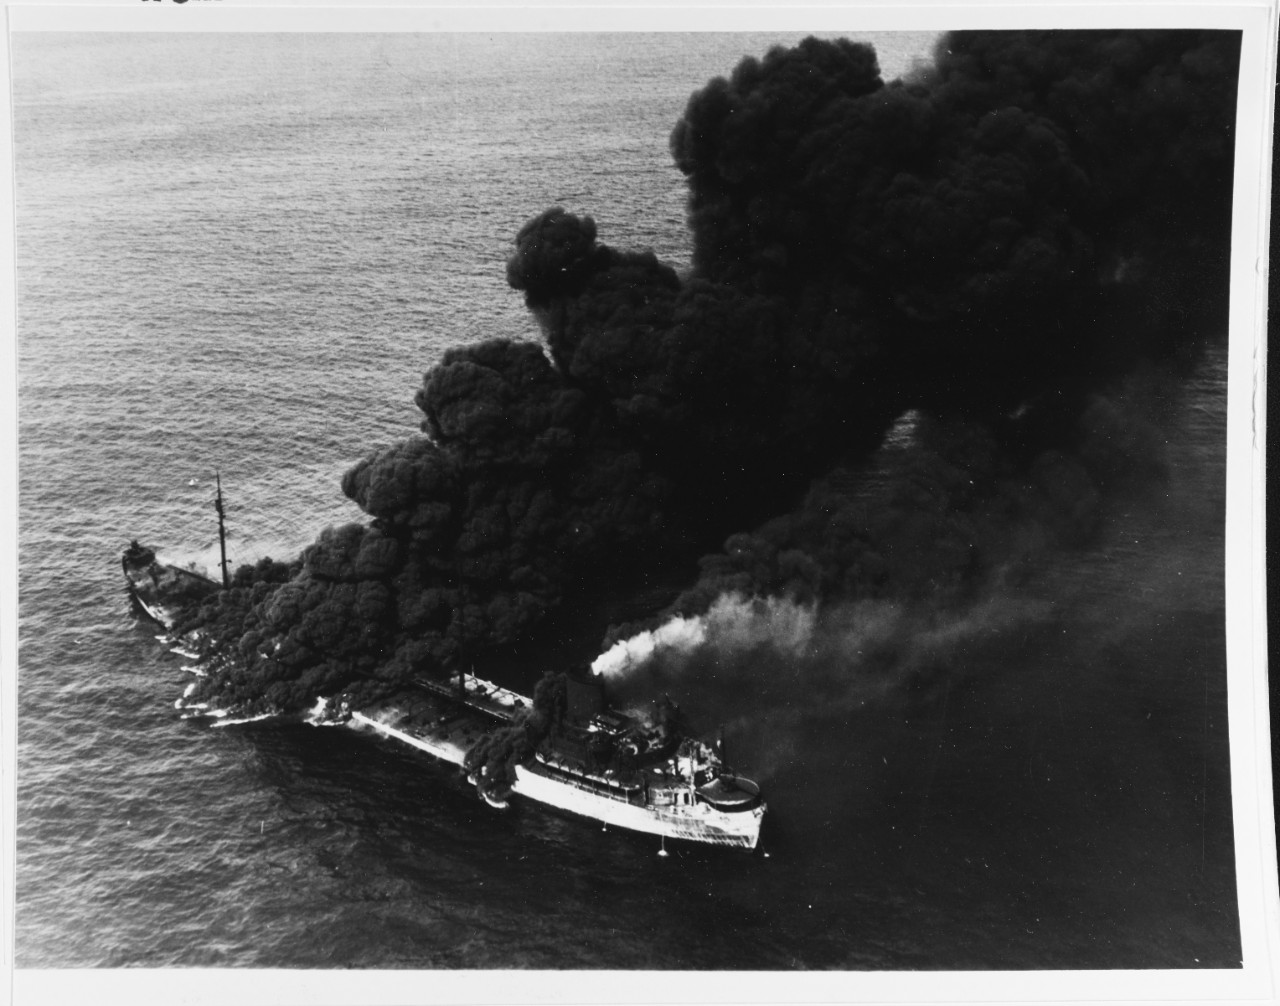 hight resolution of ss pennsylvania sun burning after being torpedoed by u 571 july 1942 naval german submarine